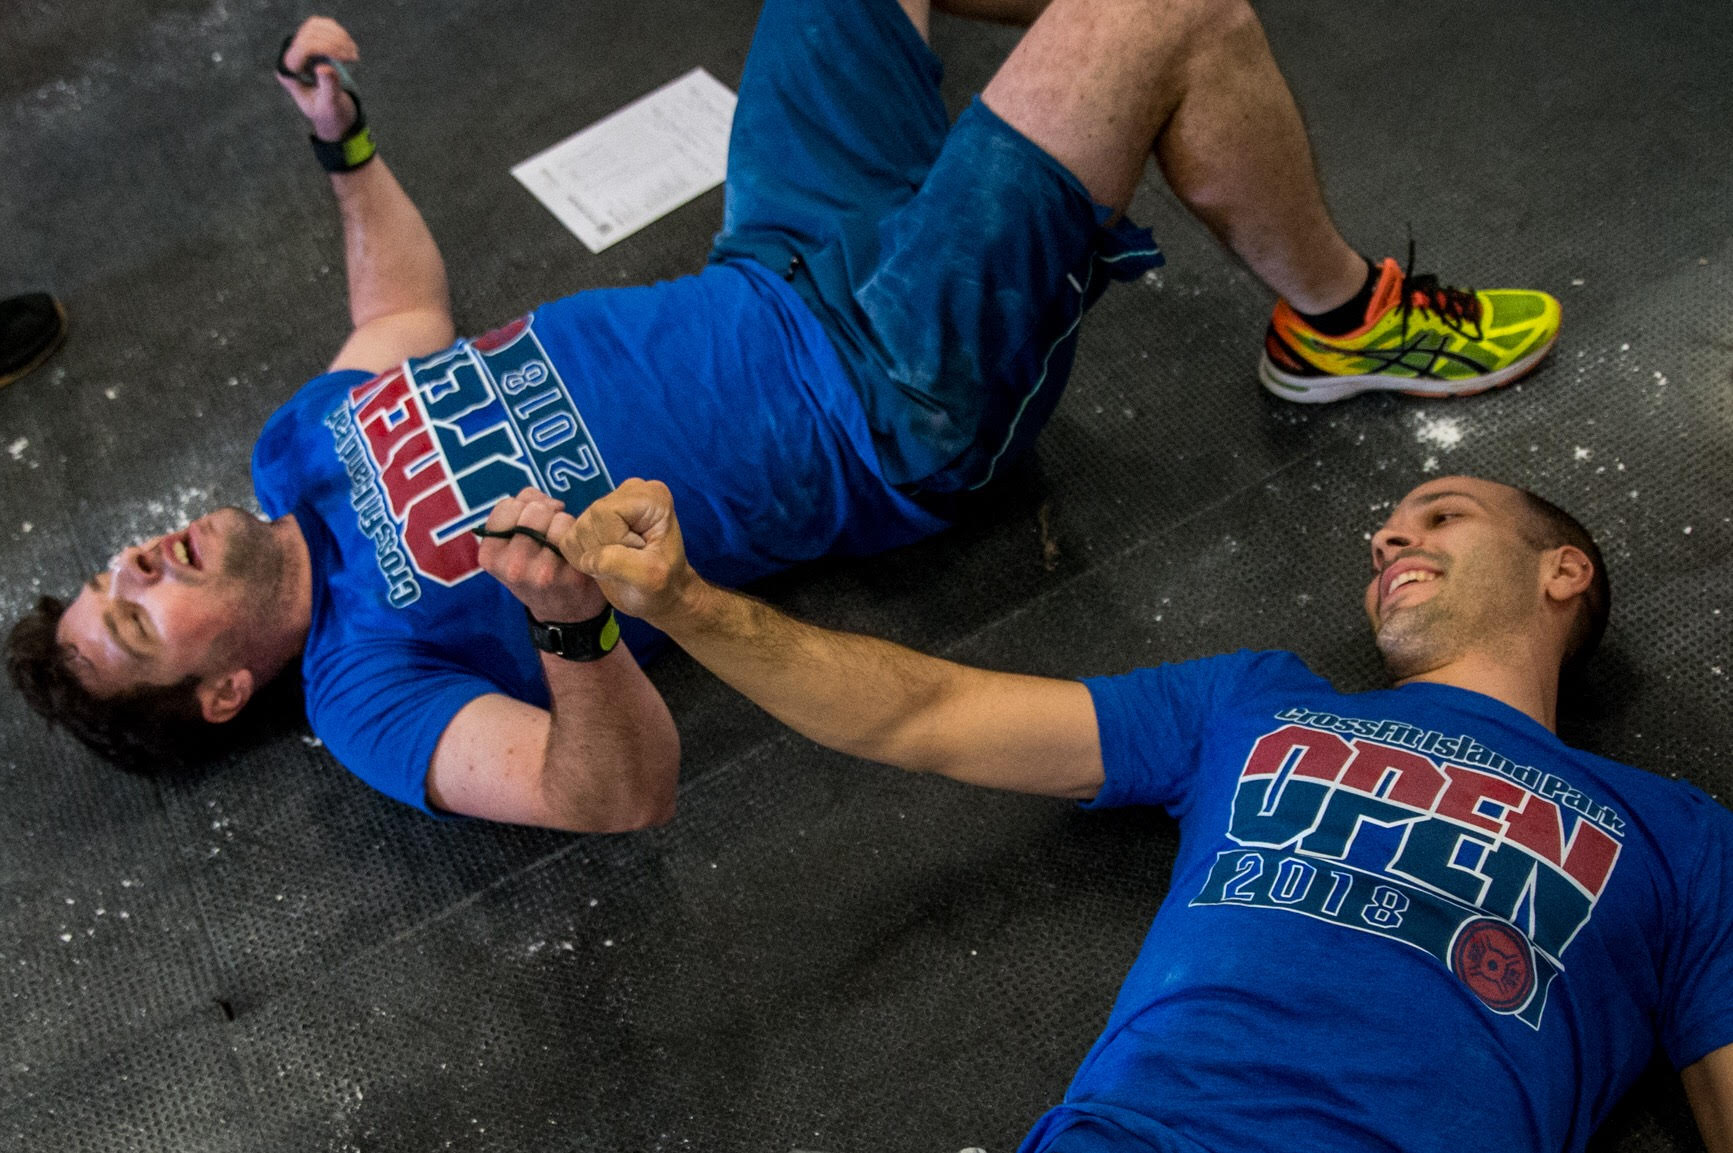 Athletes Pat Duggan & Chris Tofelo after completing 18.1 Photo: @supercleary